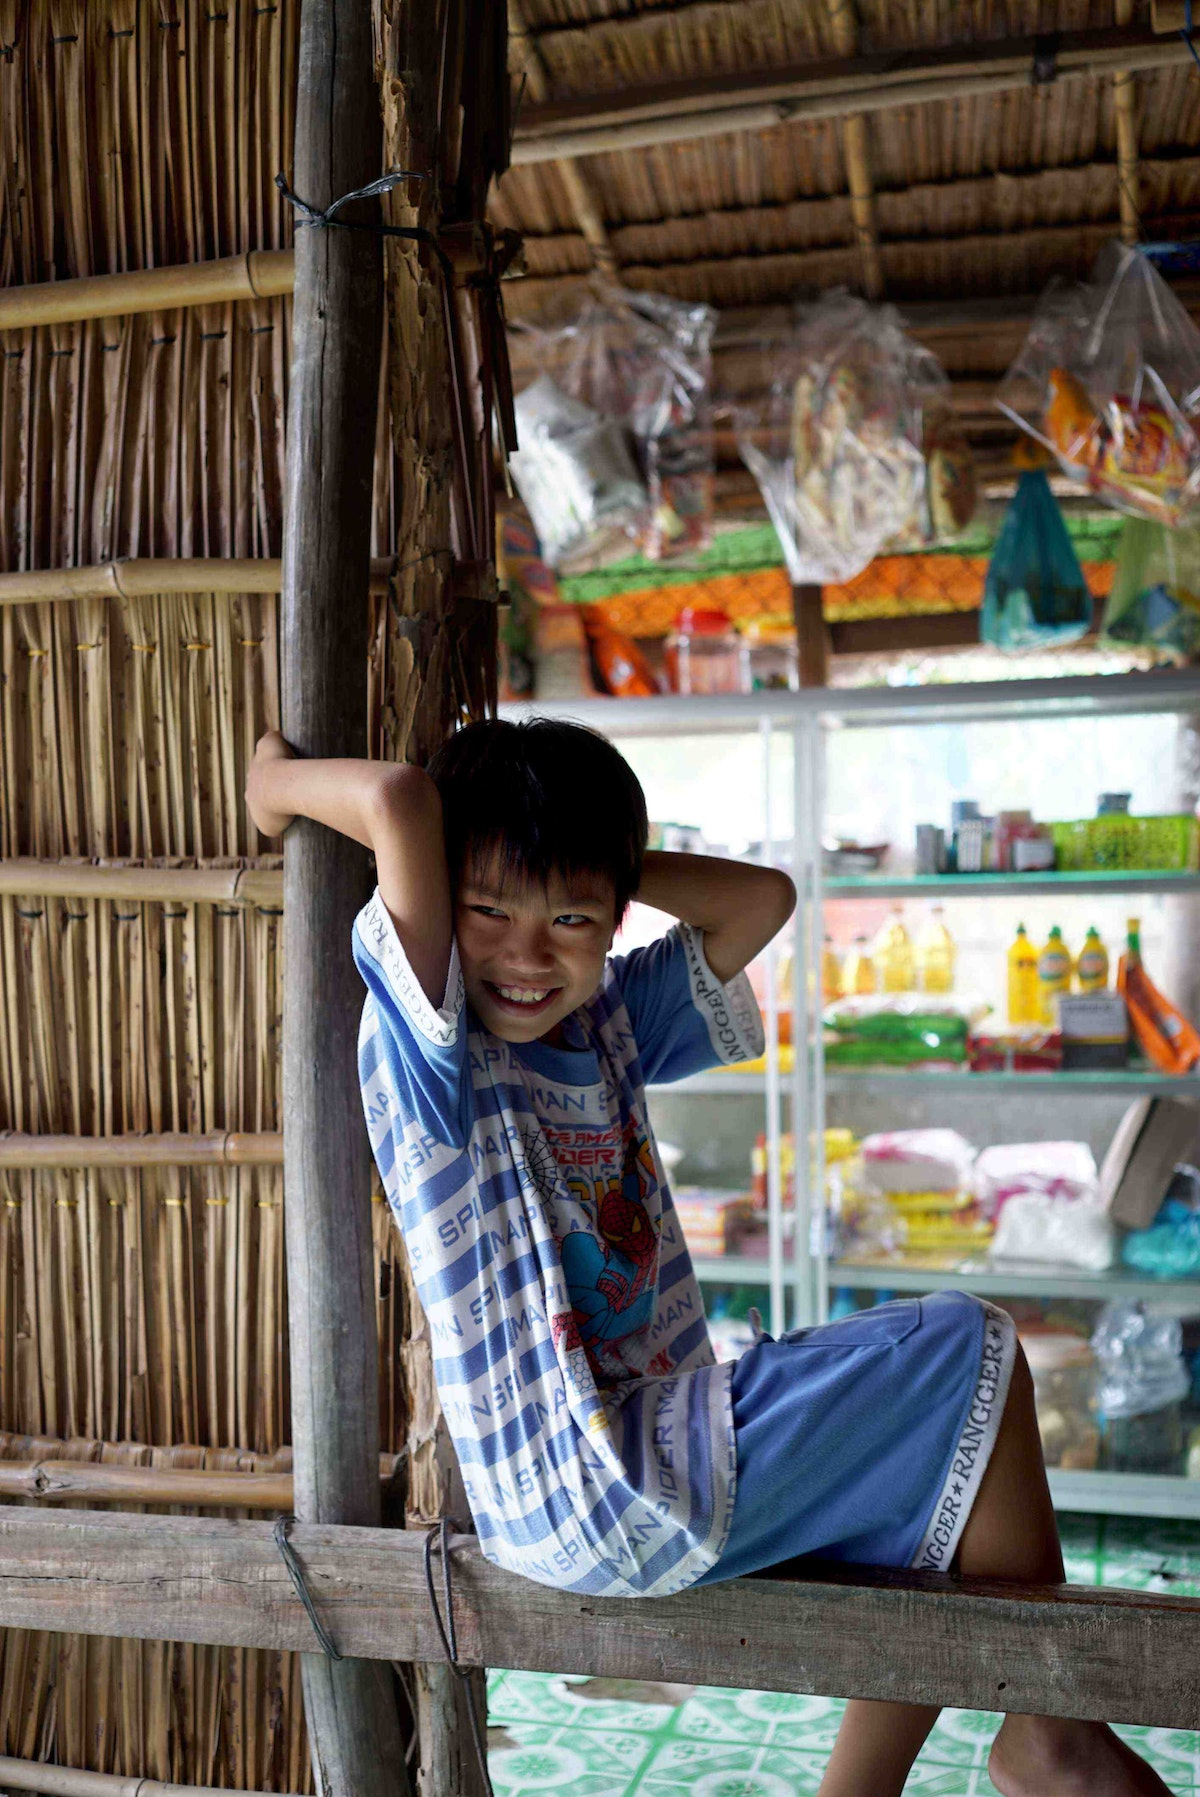 Orbis Monthly Appeal: Many more children in Vietnam like Dai need help to see